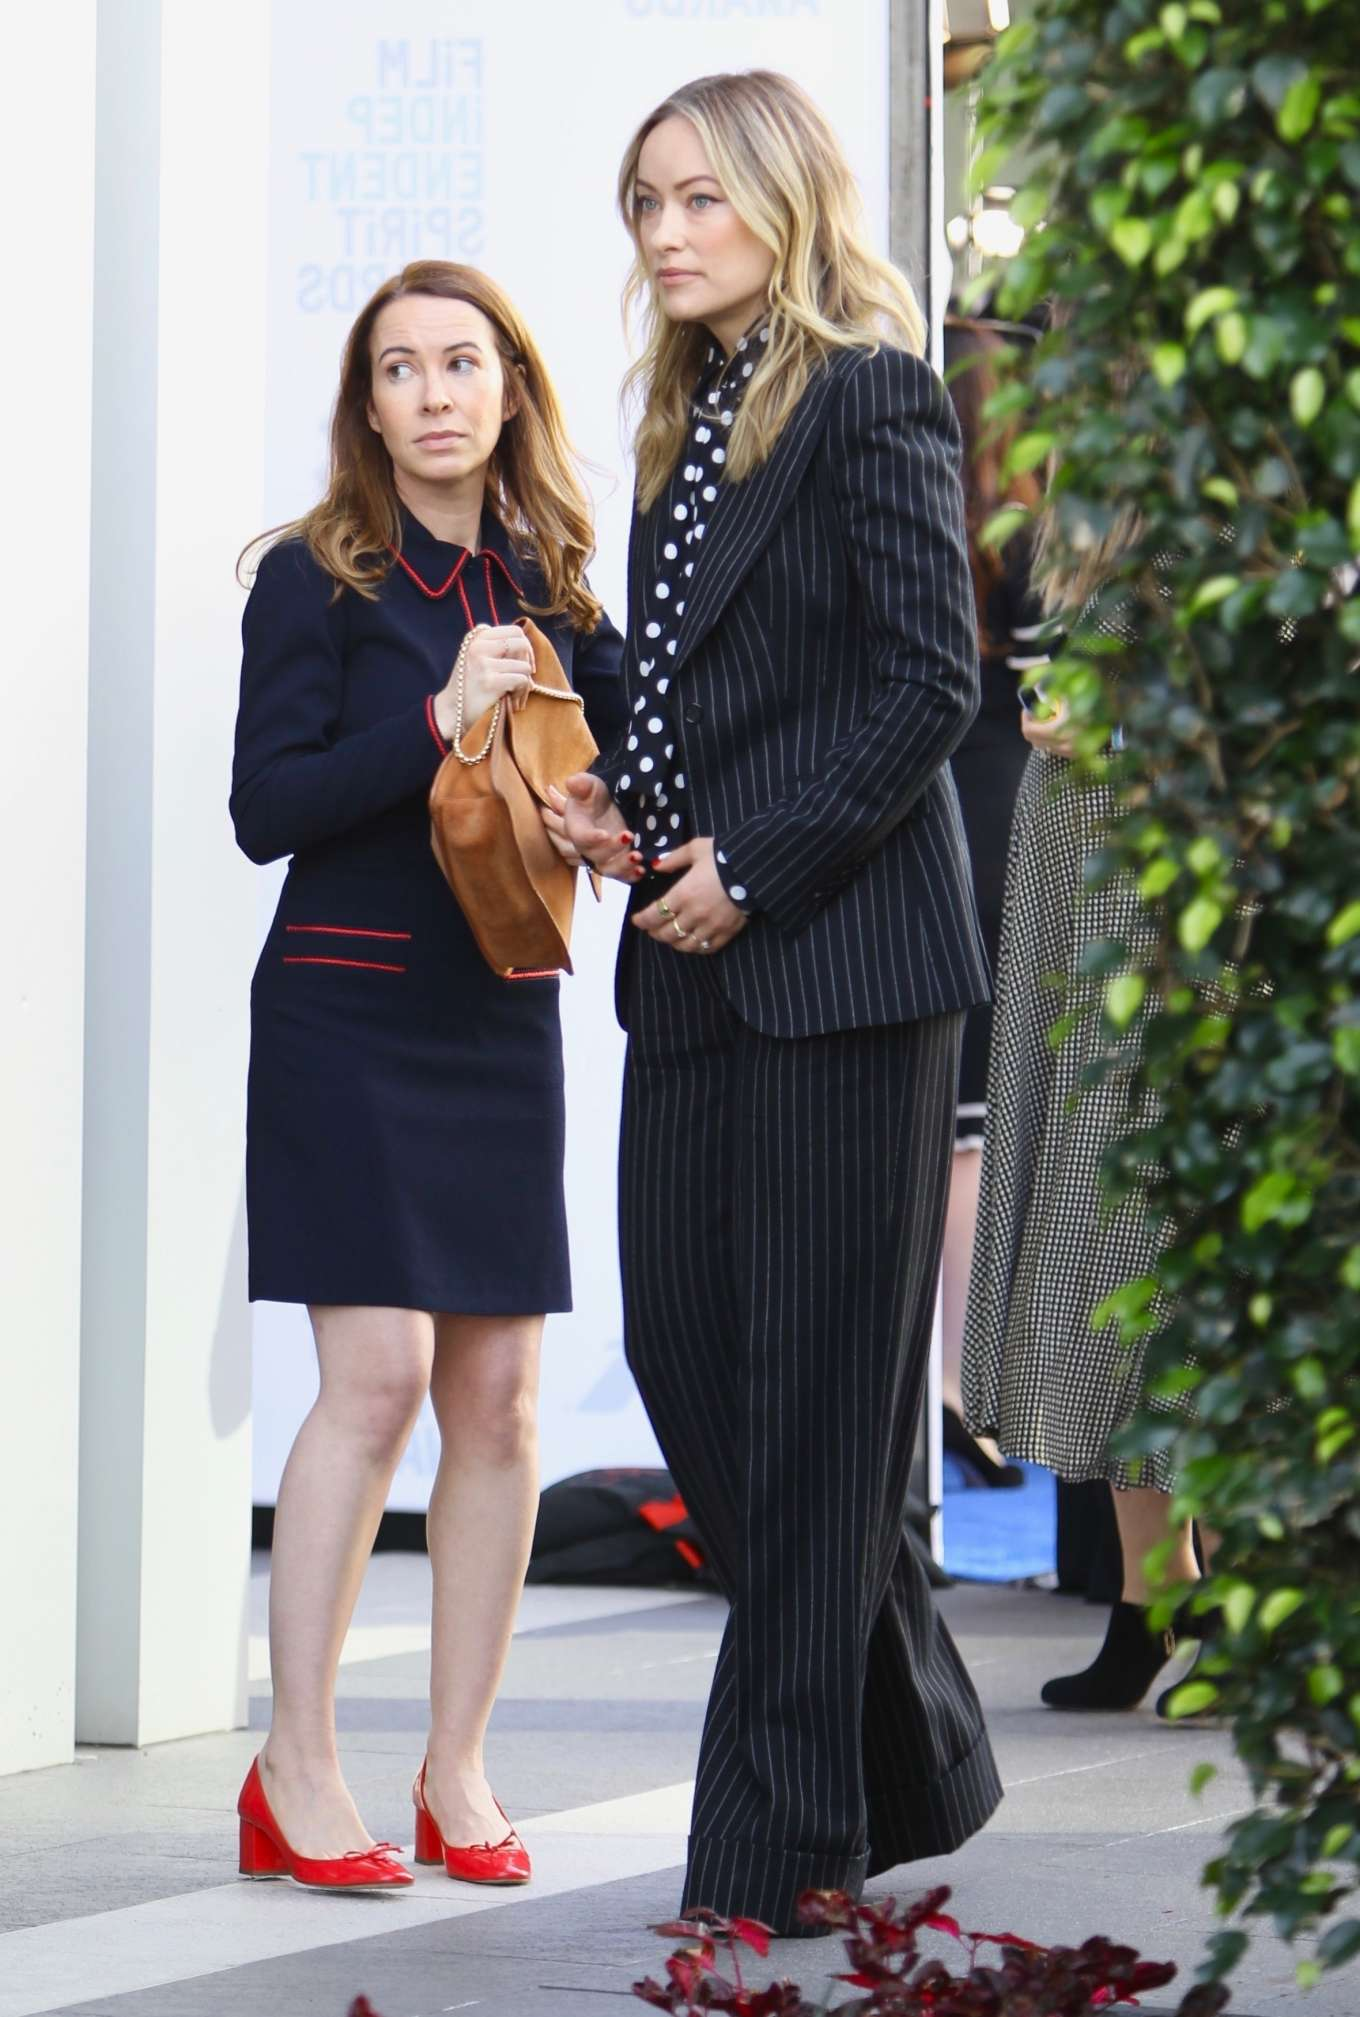 Olivia Wilde - Attends a luncheon in Beverly Hills